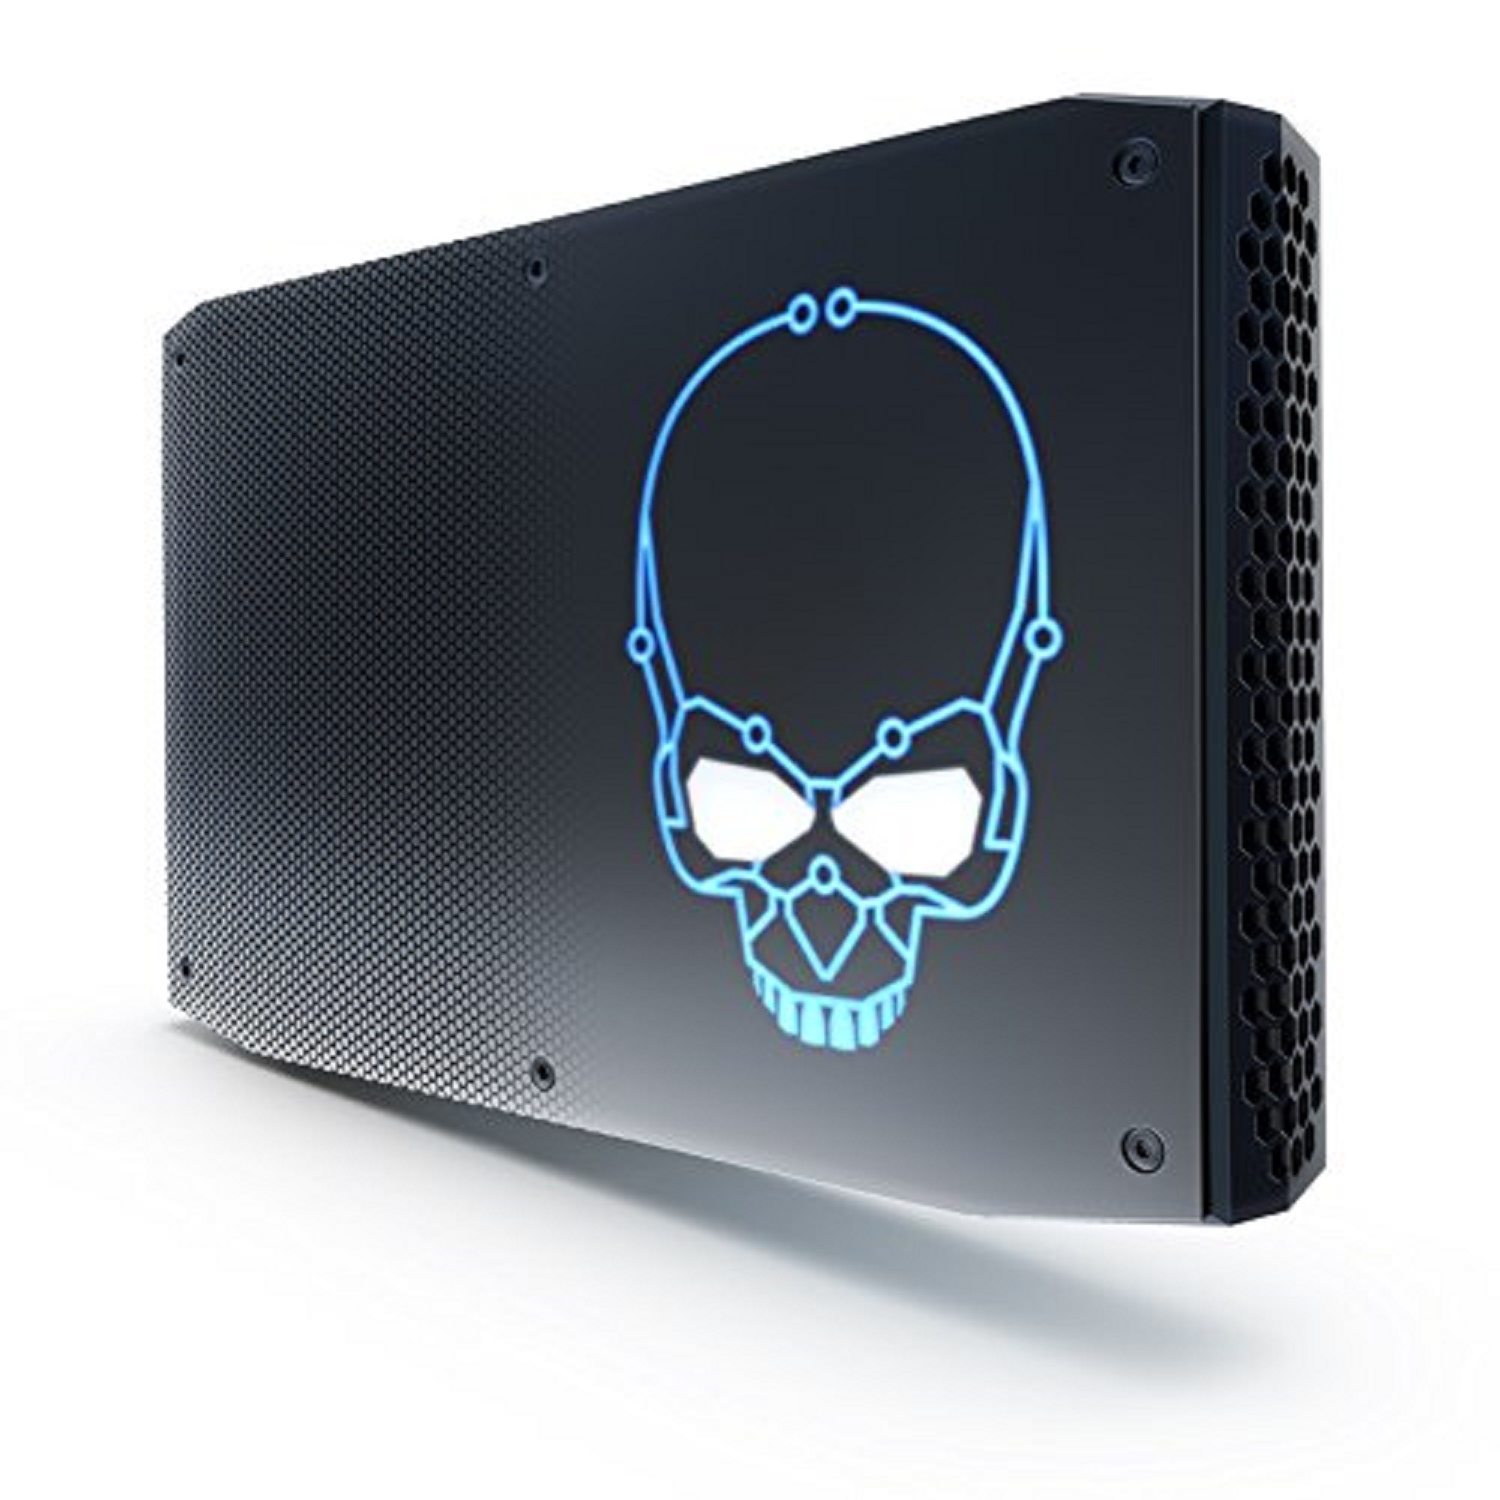 Intel NUC Hades Canyon NUC8I7HNK Premium Small Form Factor Gaming and Business Mini Desktop (Intel 8th Gen i7-8705G, 8GB RAM, 256GB PCIe SSD, Radeon RX Vega M GL, WiFi, Thunderbolt 3, 4k, Win 10 Pro)